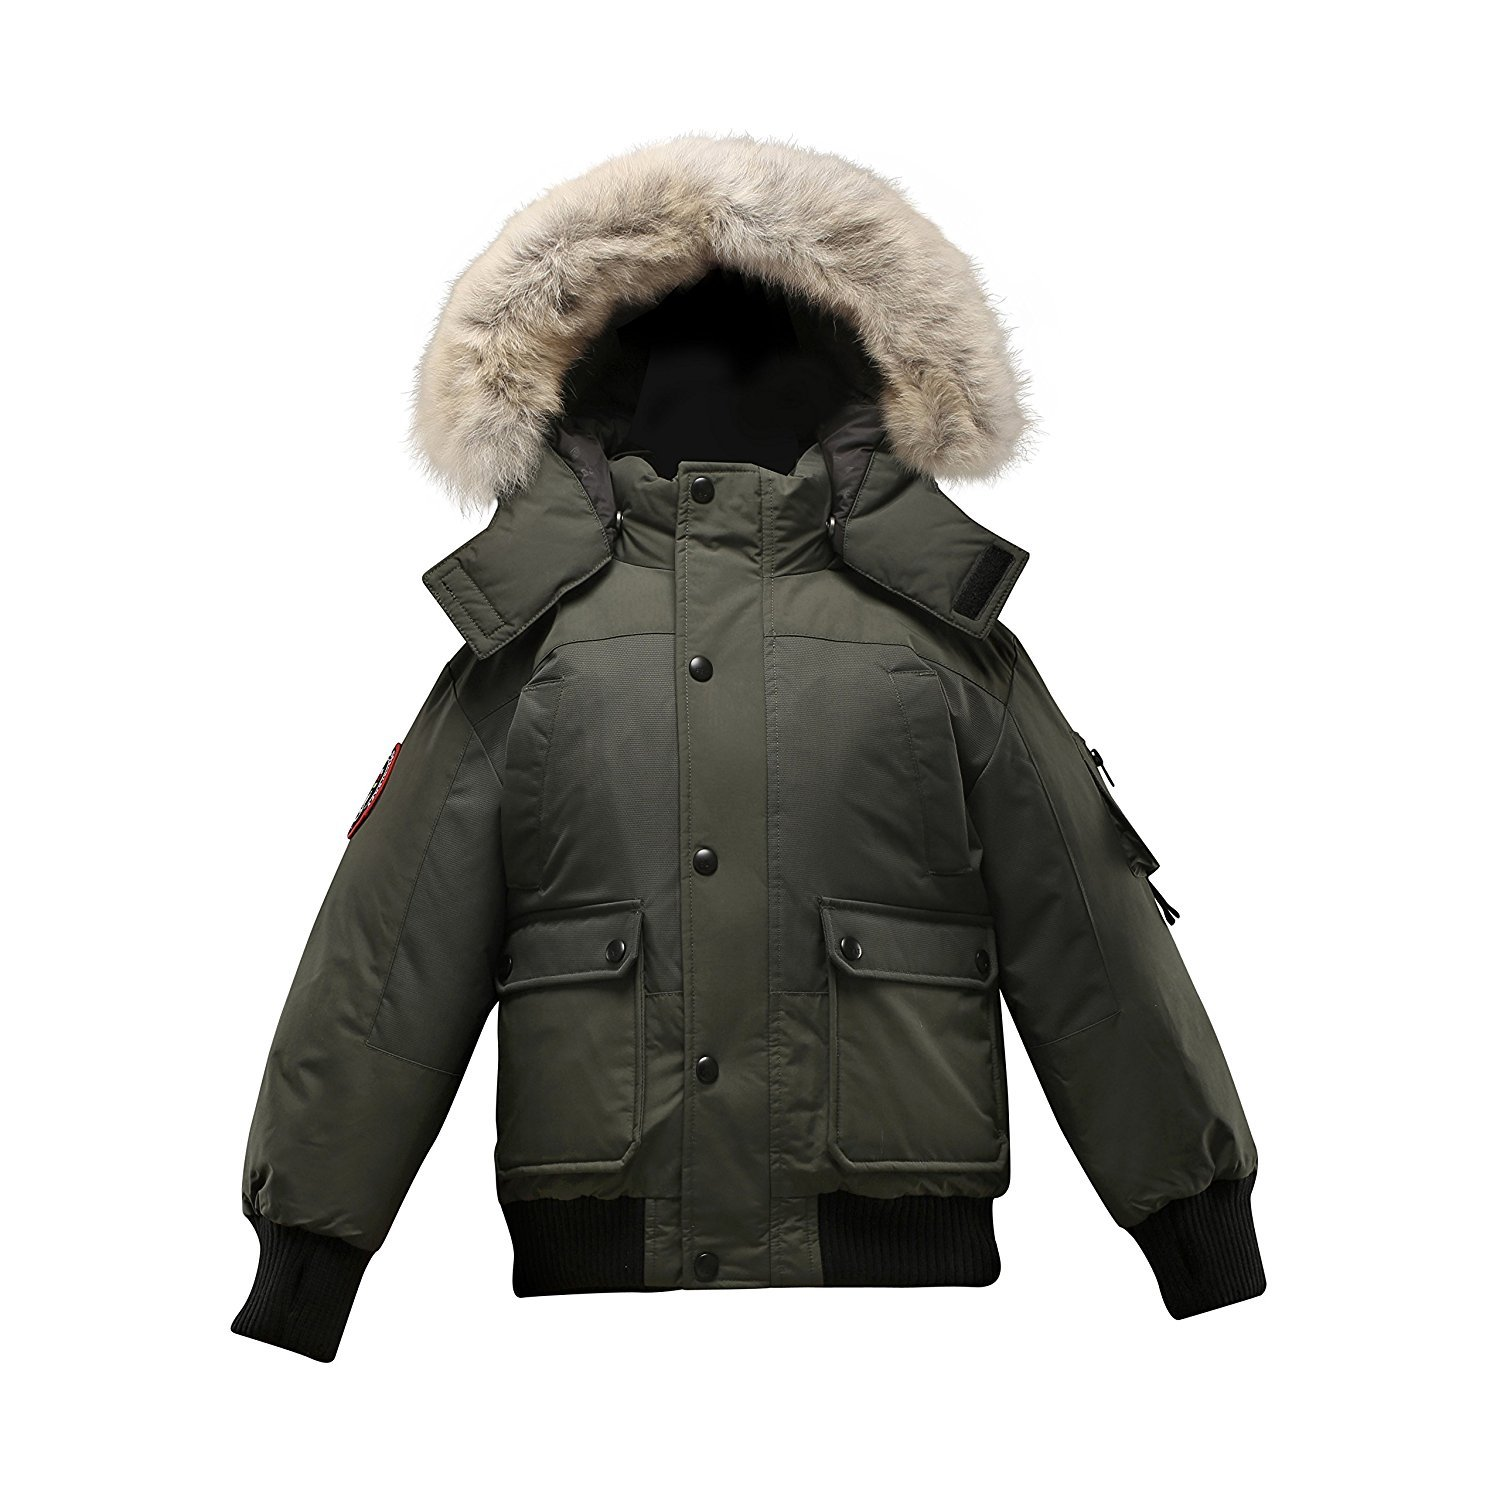 Triple F.A.T. Goose Grinnell Boys Down Jacket With Real Coyote Fur (8/10, Olive)